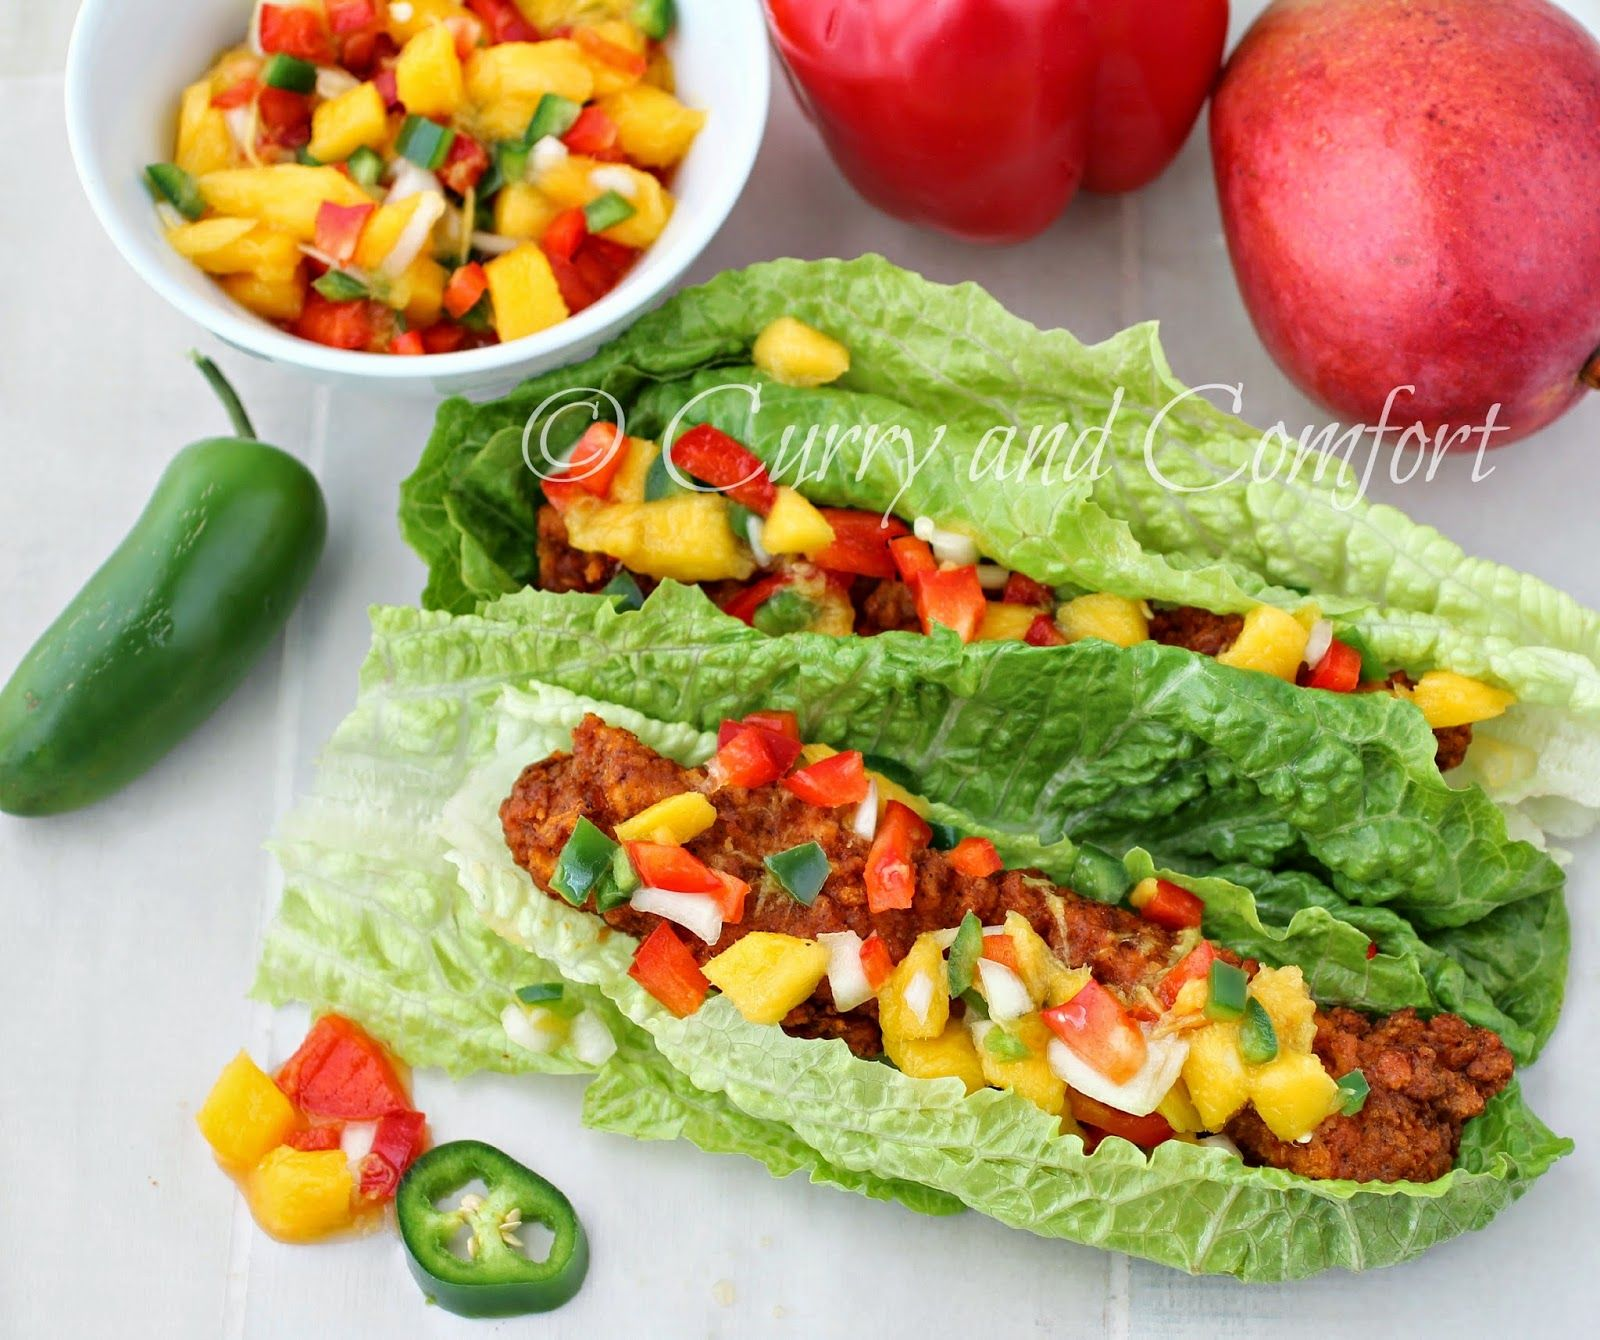 Curry and Comfort: Buffalo Chicken Lettuce Wraps with Mango Salsa